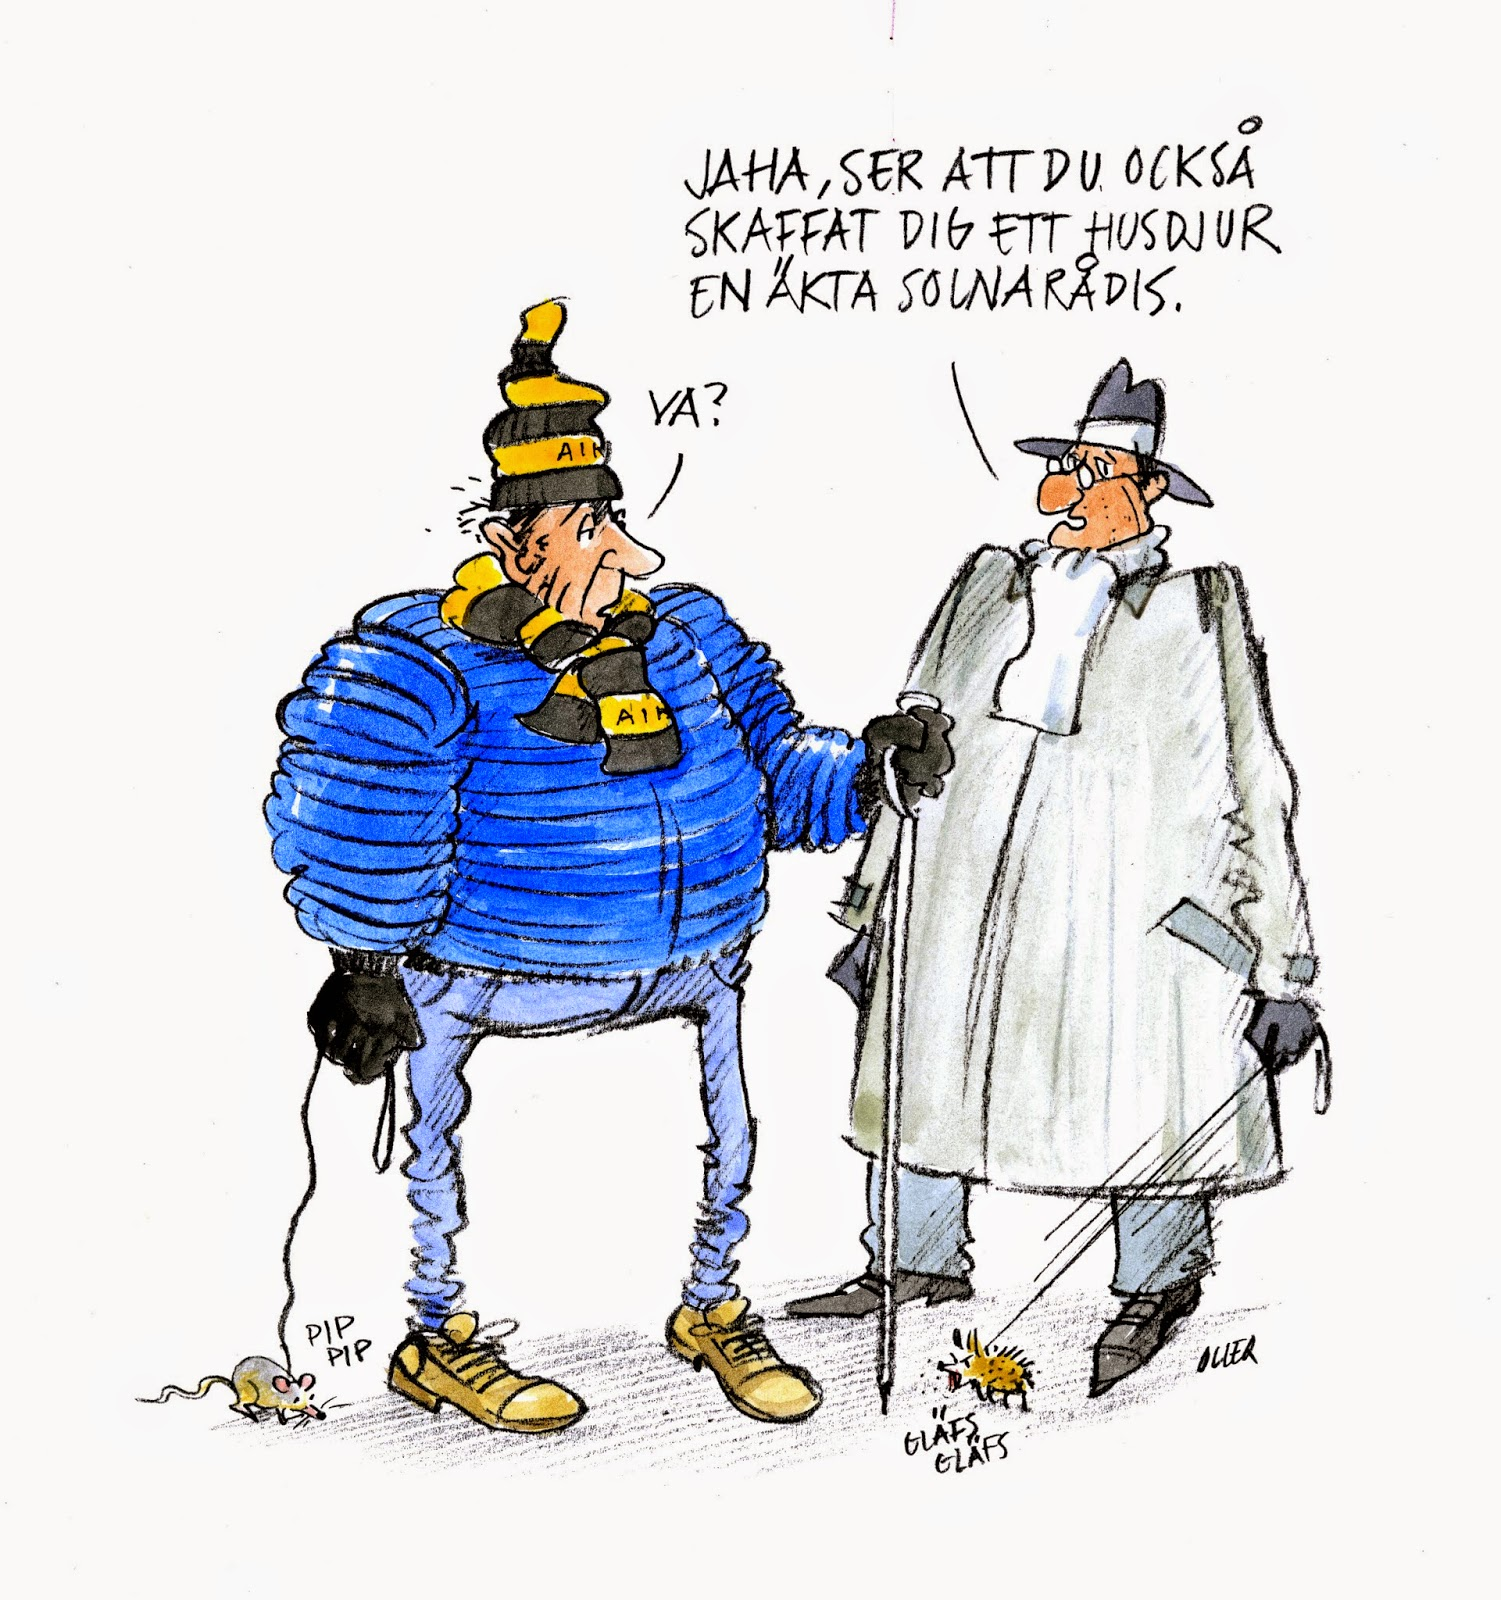 Olle Qvennerstedts Diversehandel - Olle´s General store  Gnagare är ... 69775eaea0c12